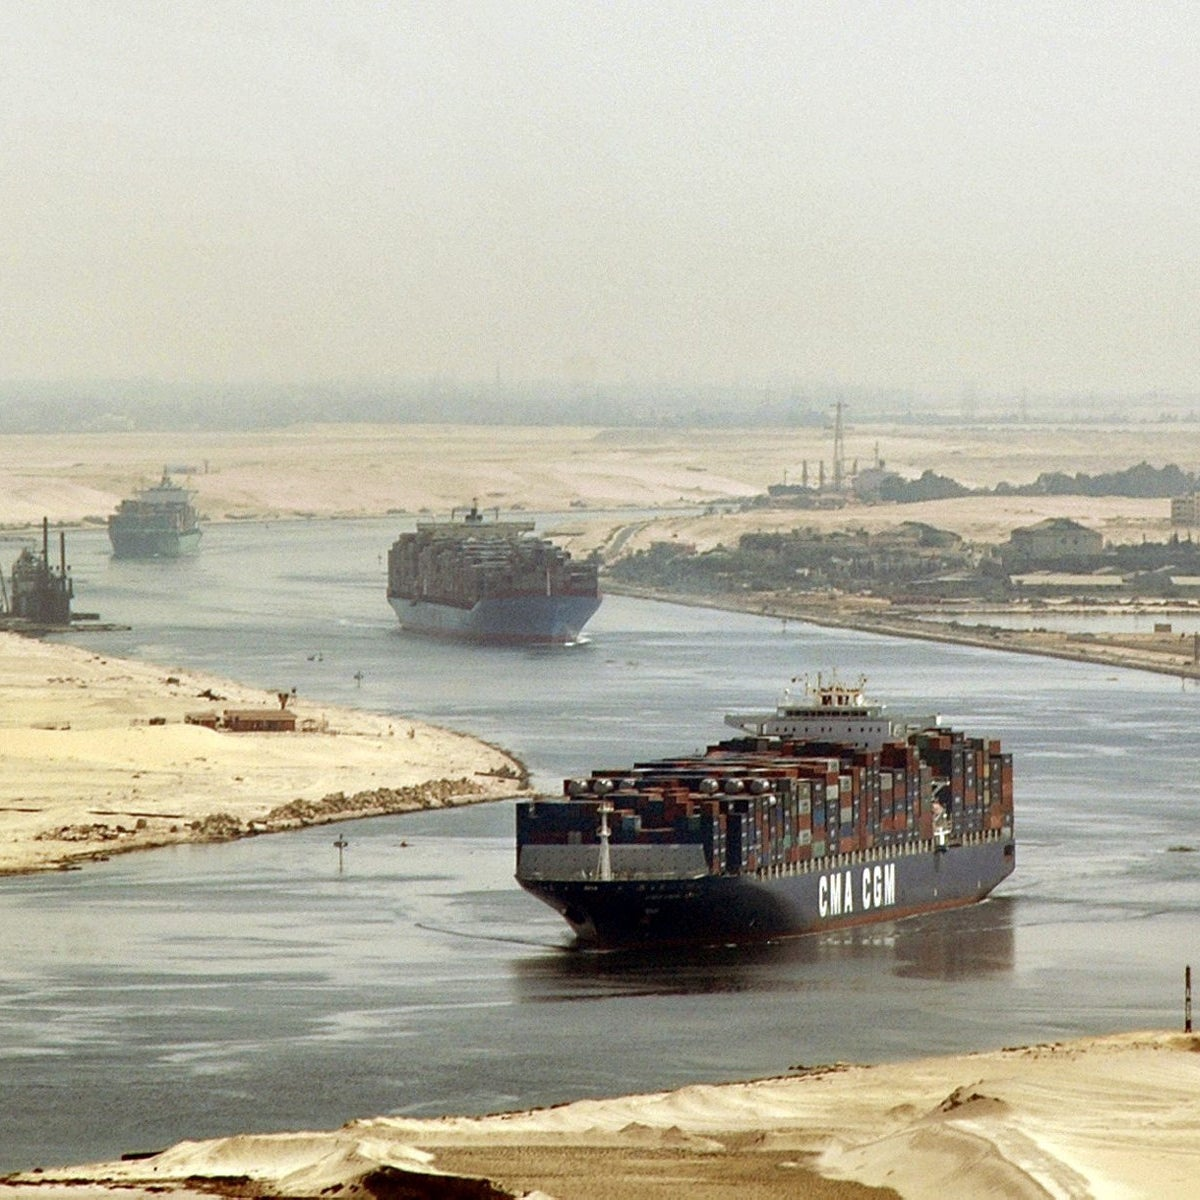 In this Sept. 21, 2009 file photo, cargo ships sail through the Suez Canal, seen from a helicopter, near Ismailia, Egypt.